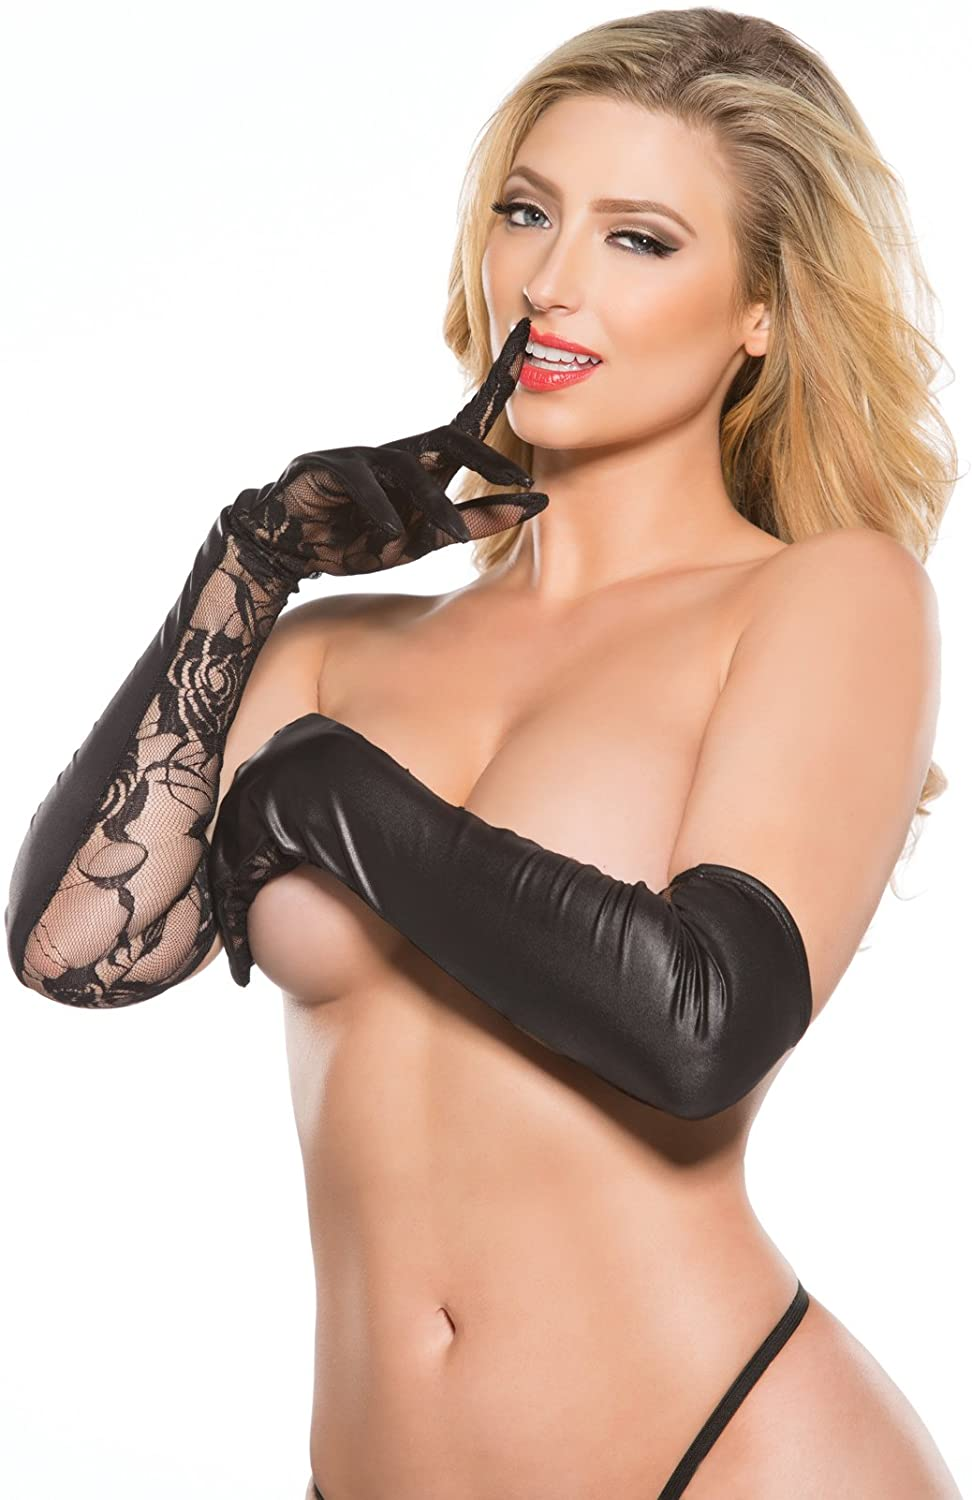 Allure Lingerie Kitten Lace and Wet Look Gloves O/s